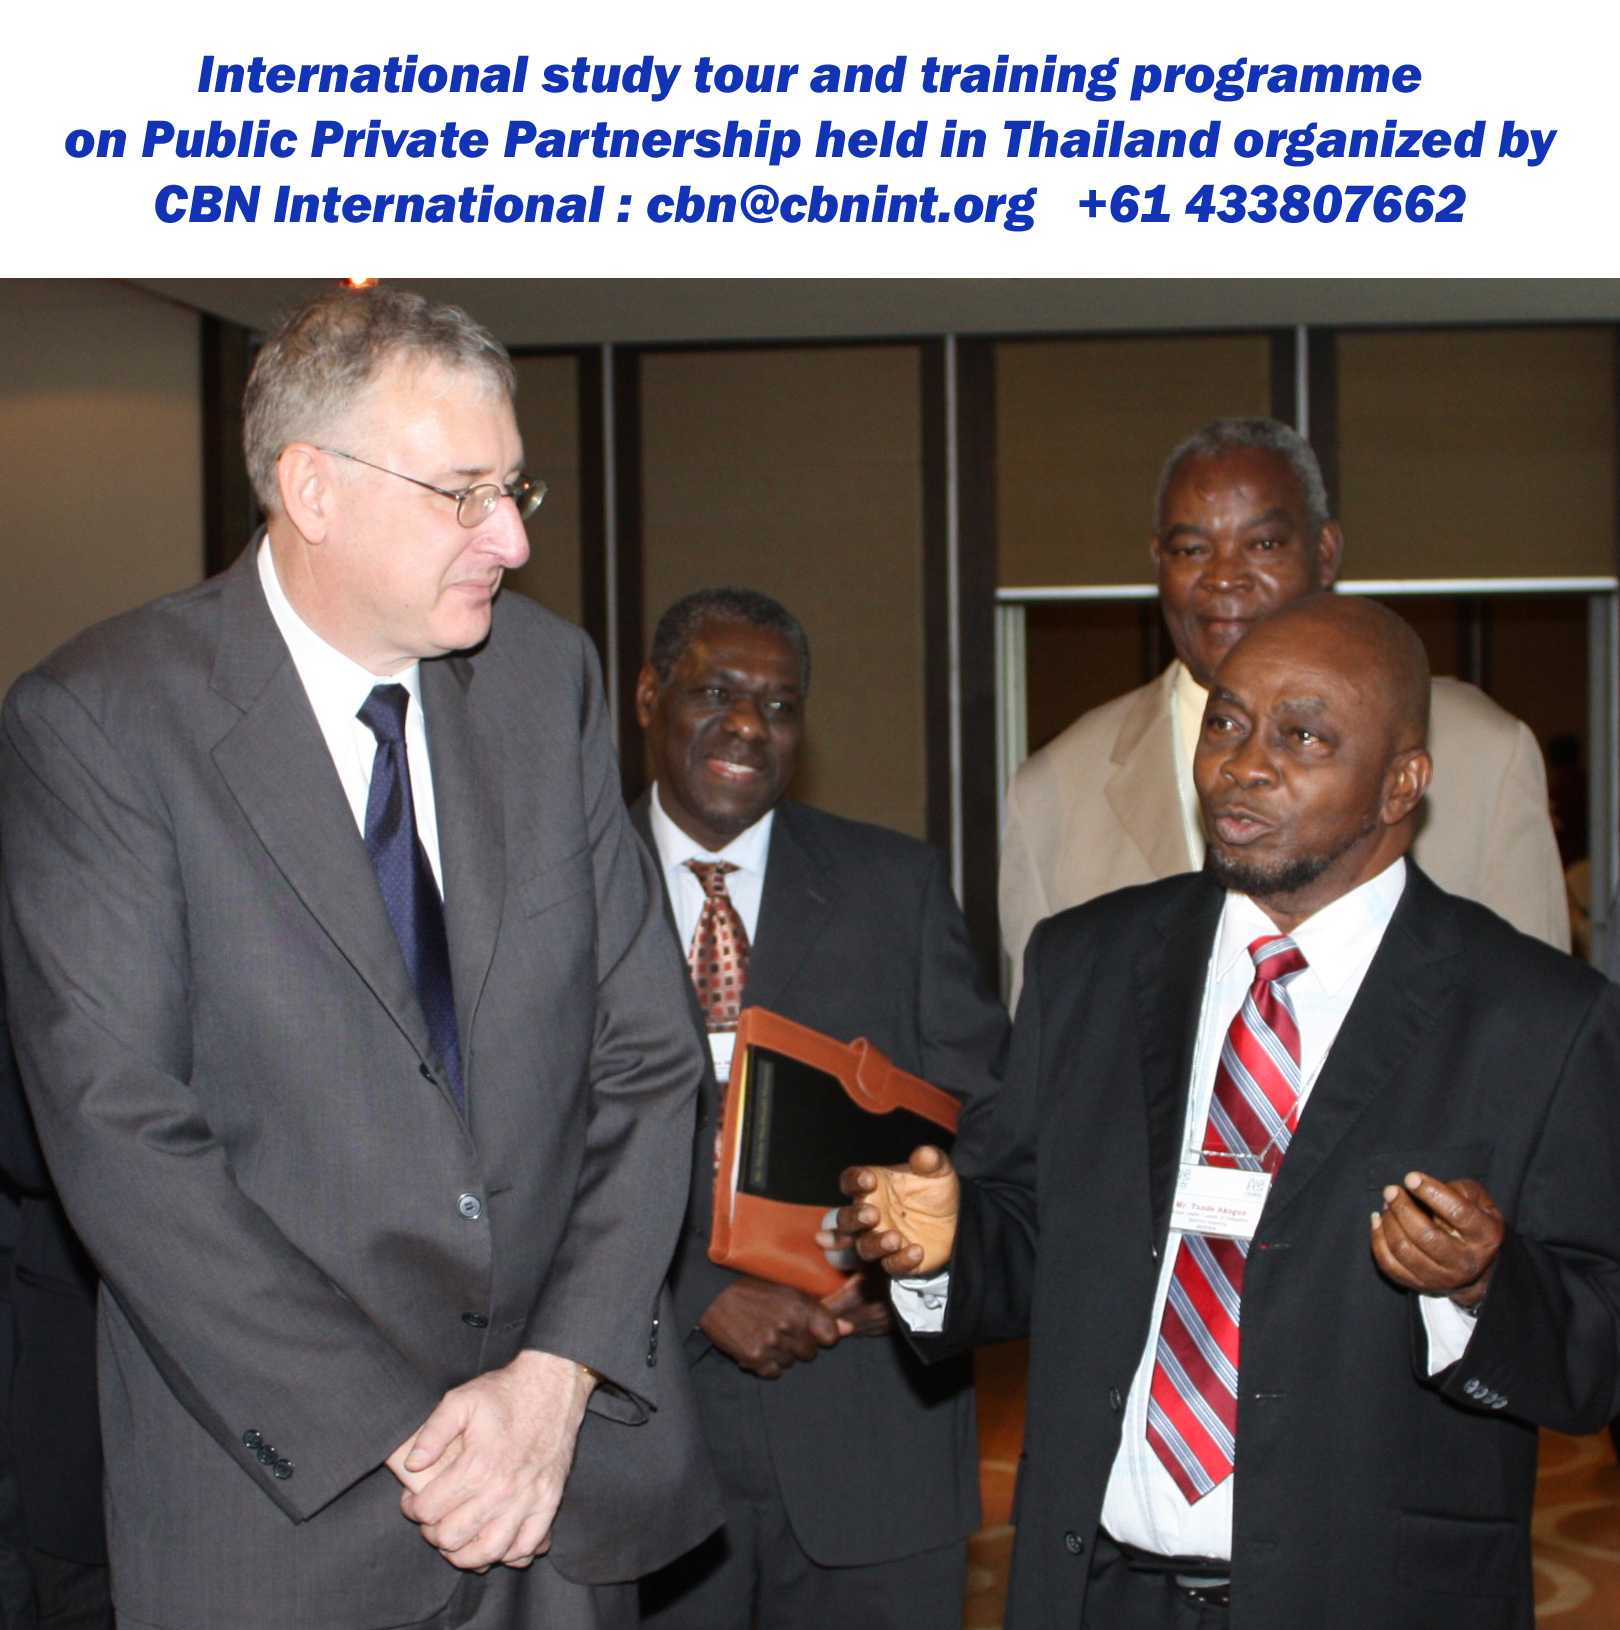 Dr. Tunde Akogun, Leader of the House, National Assembly of Nigeria in conversation with CBN resource person Mr. Trevor Bull during a CBN international training and study tour workshop held in Bangkok; short course on Good Governance series.